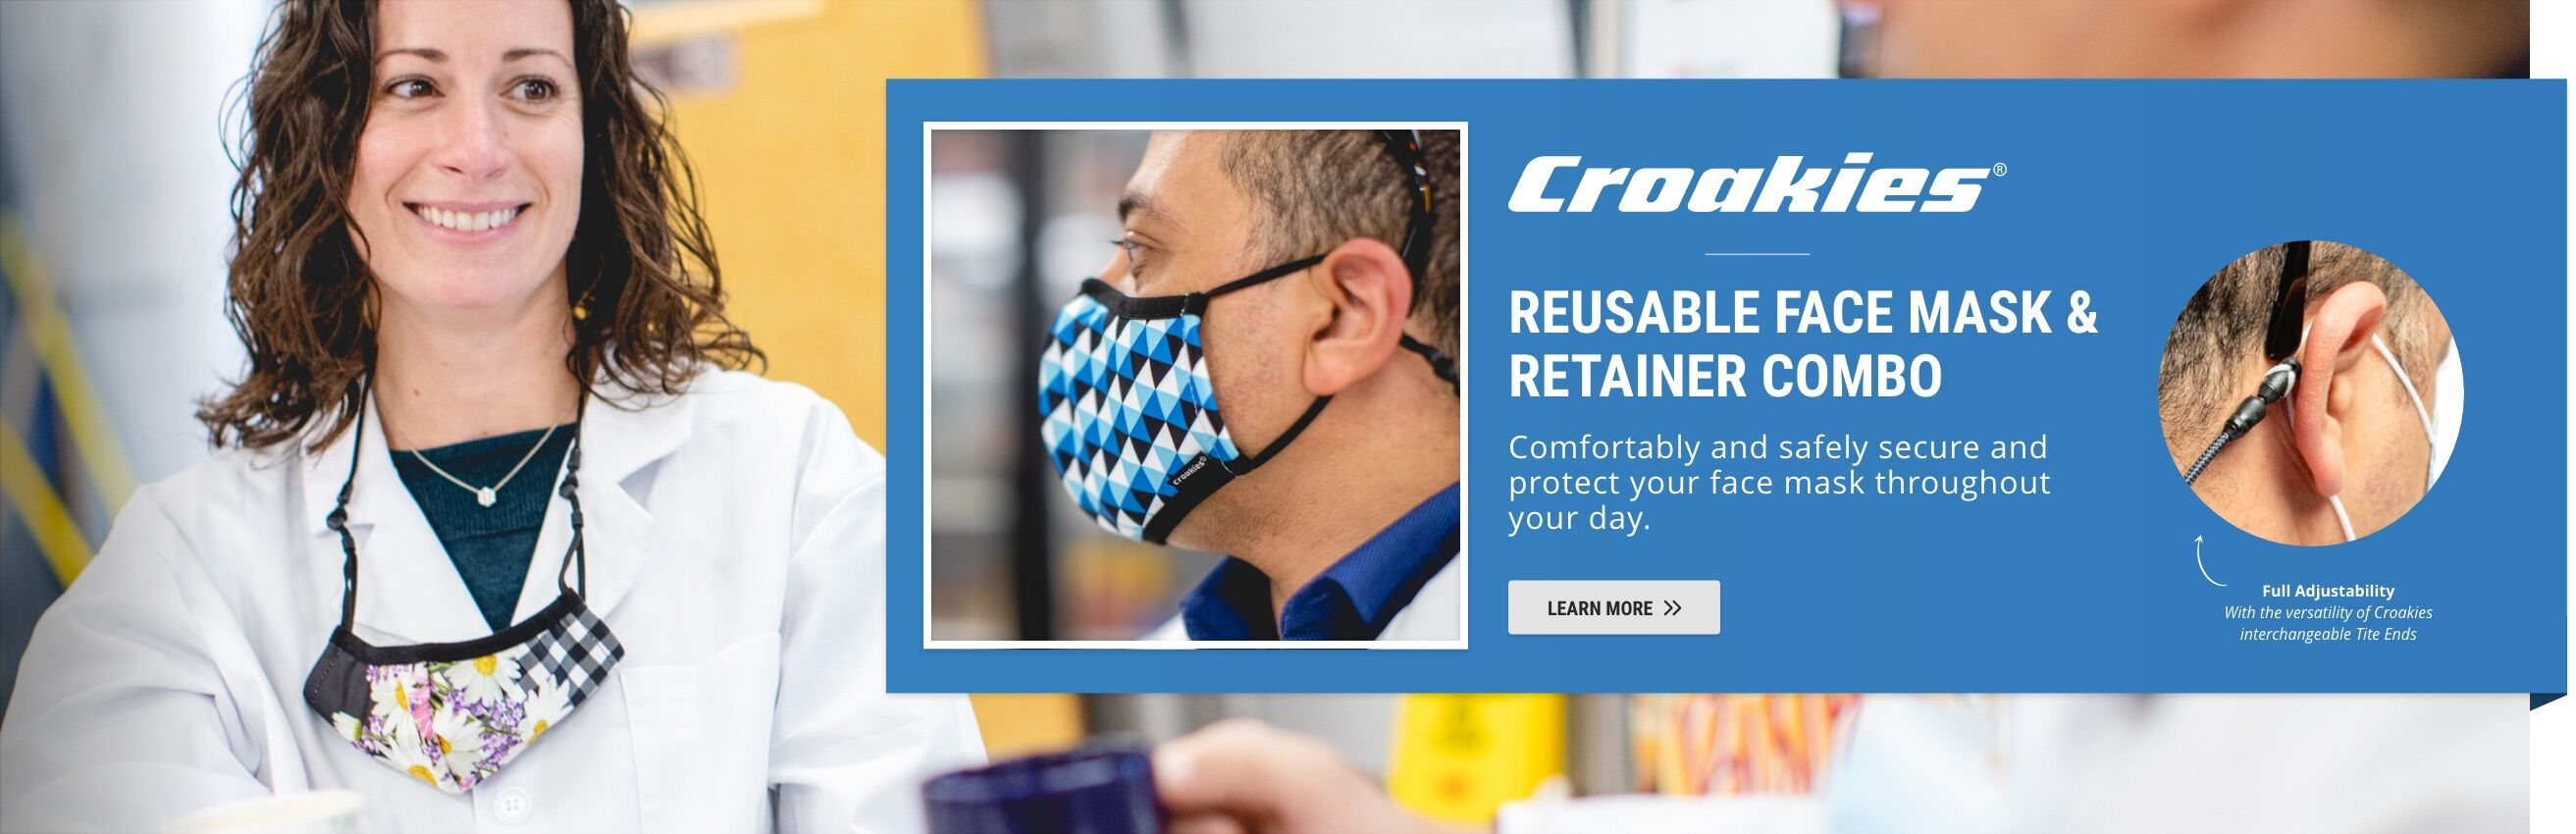 croakies-reusable-face-mask-banner